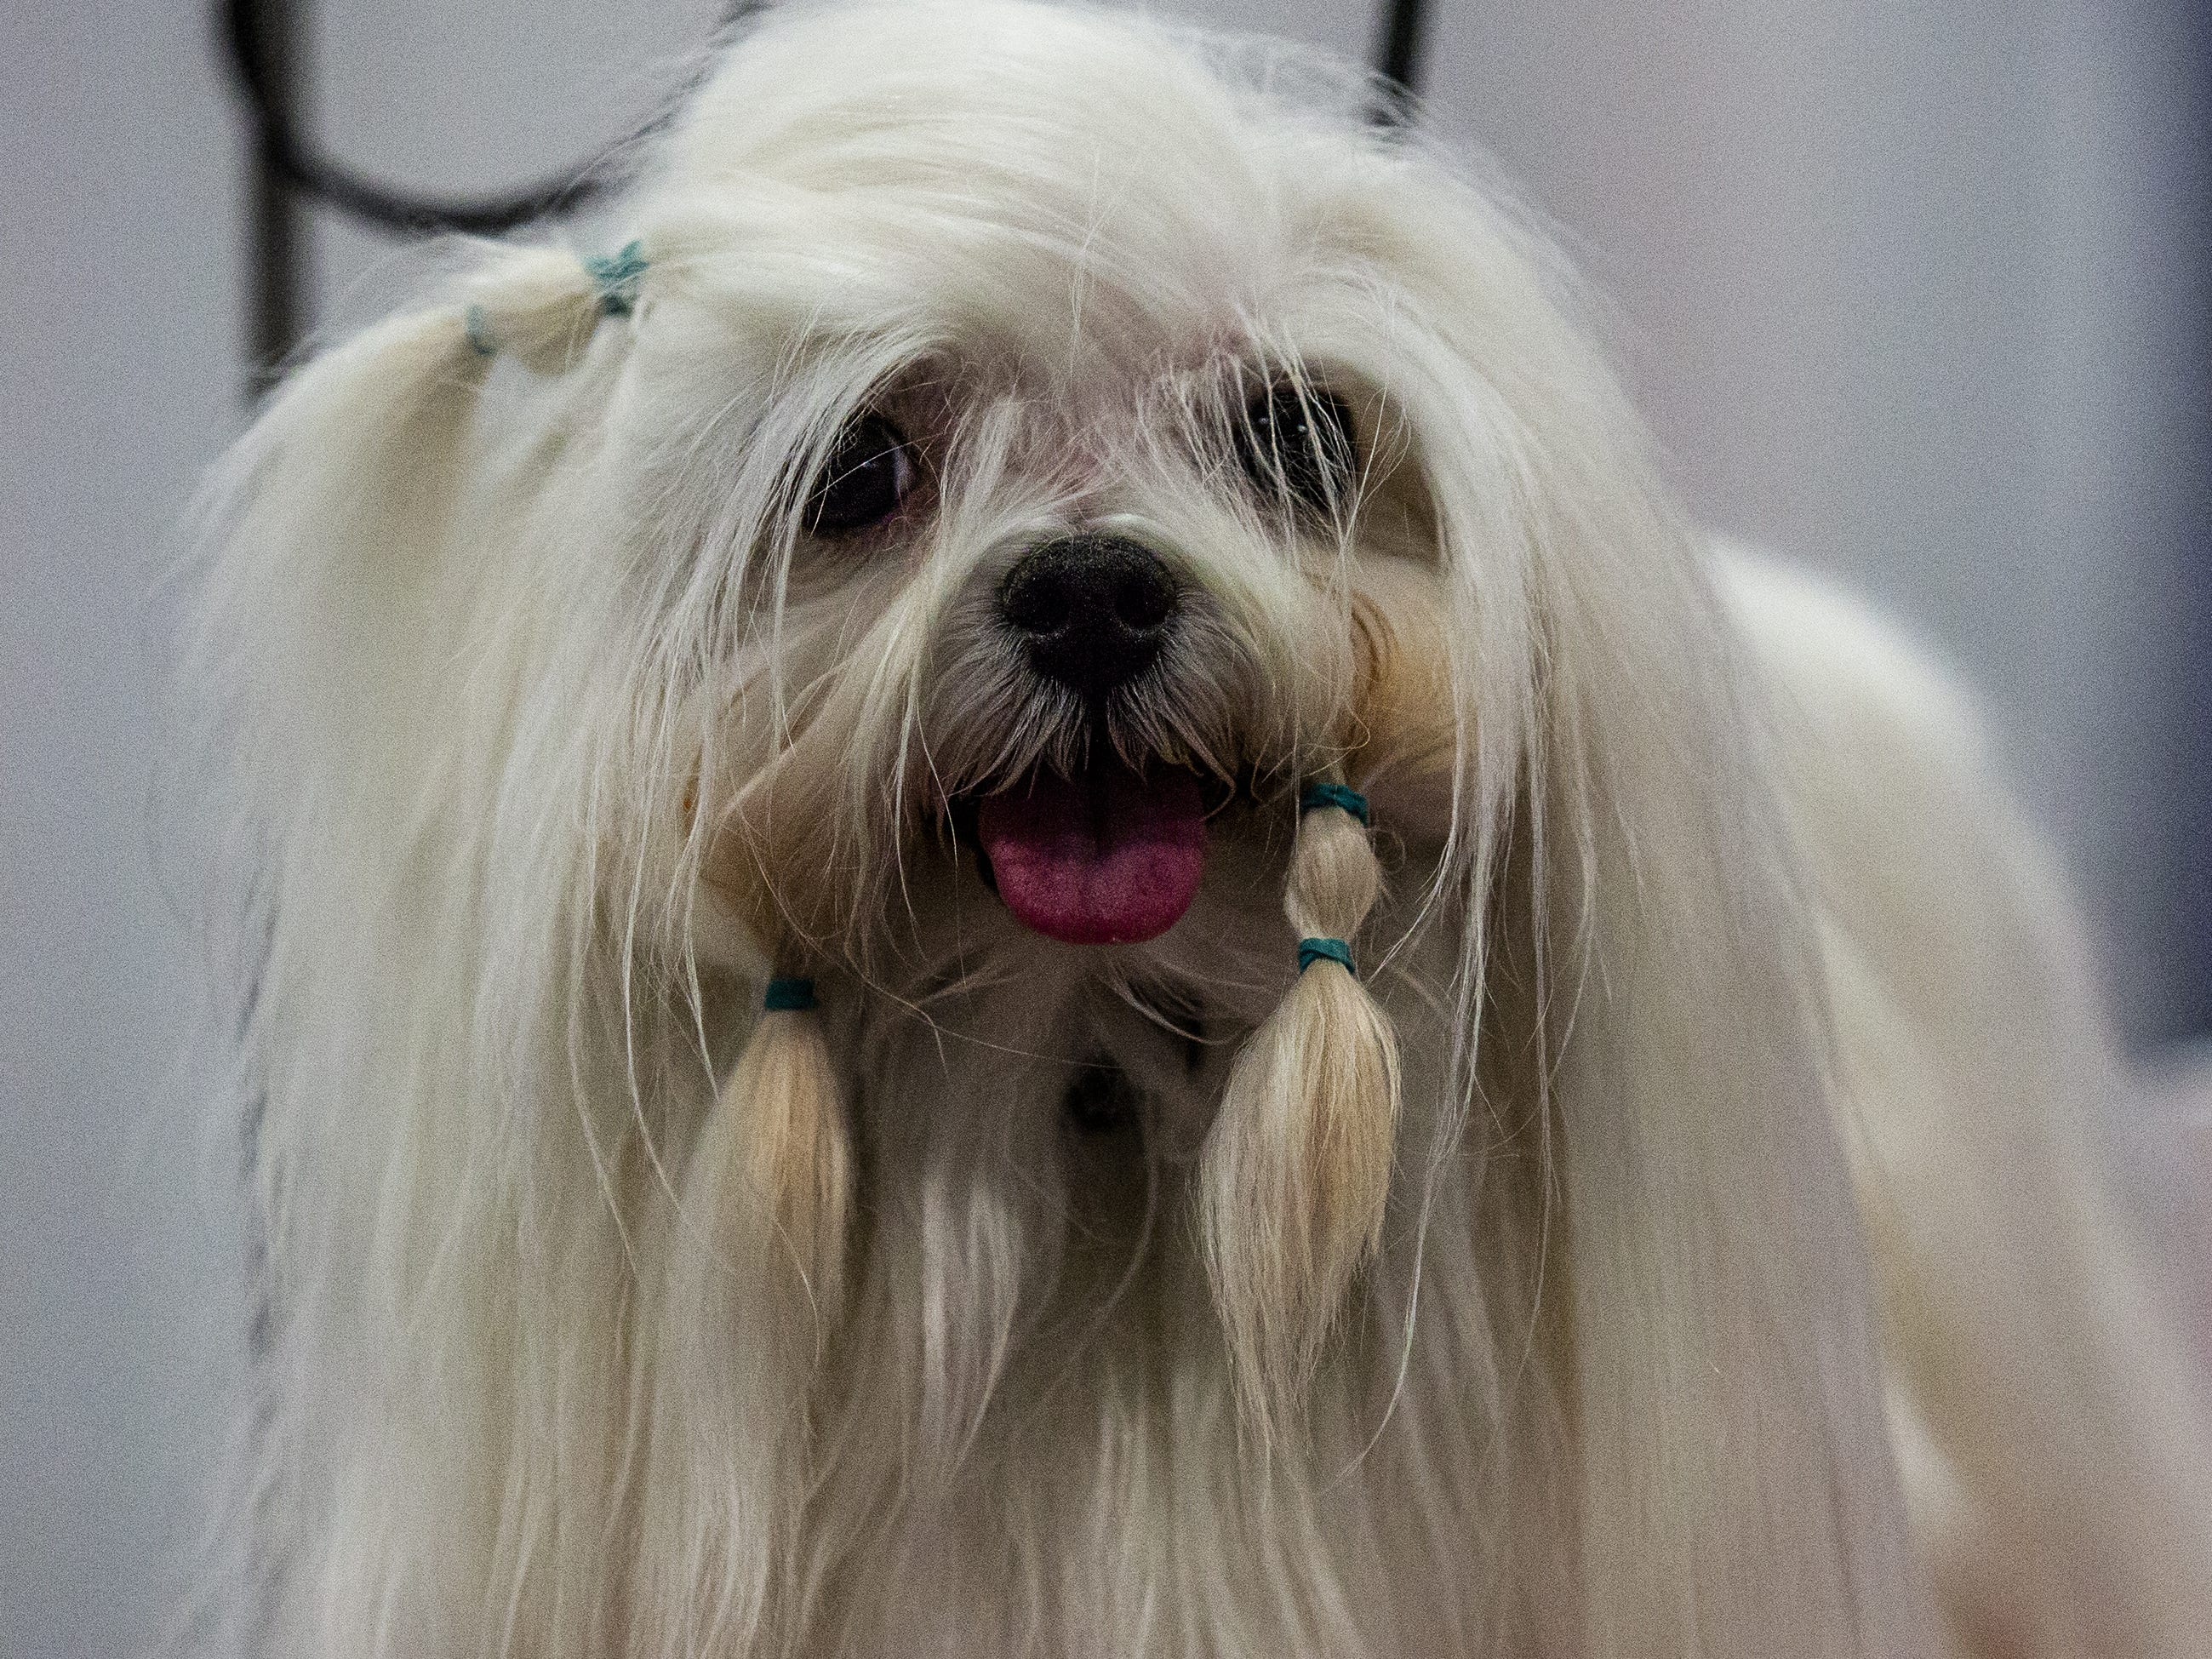 Timebomb, a Maltese, waits to be groomed at the 2019 Kentuckiana Cluster of Dog Shows at the Kentucky Exposition Center. March 14, 2019.